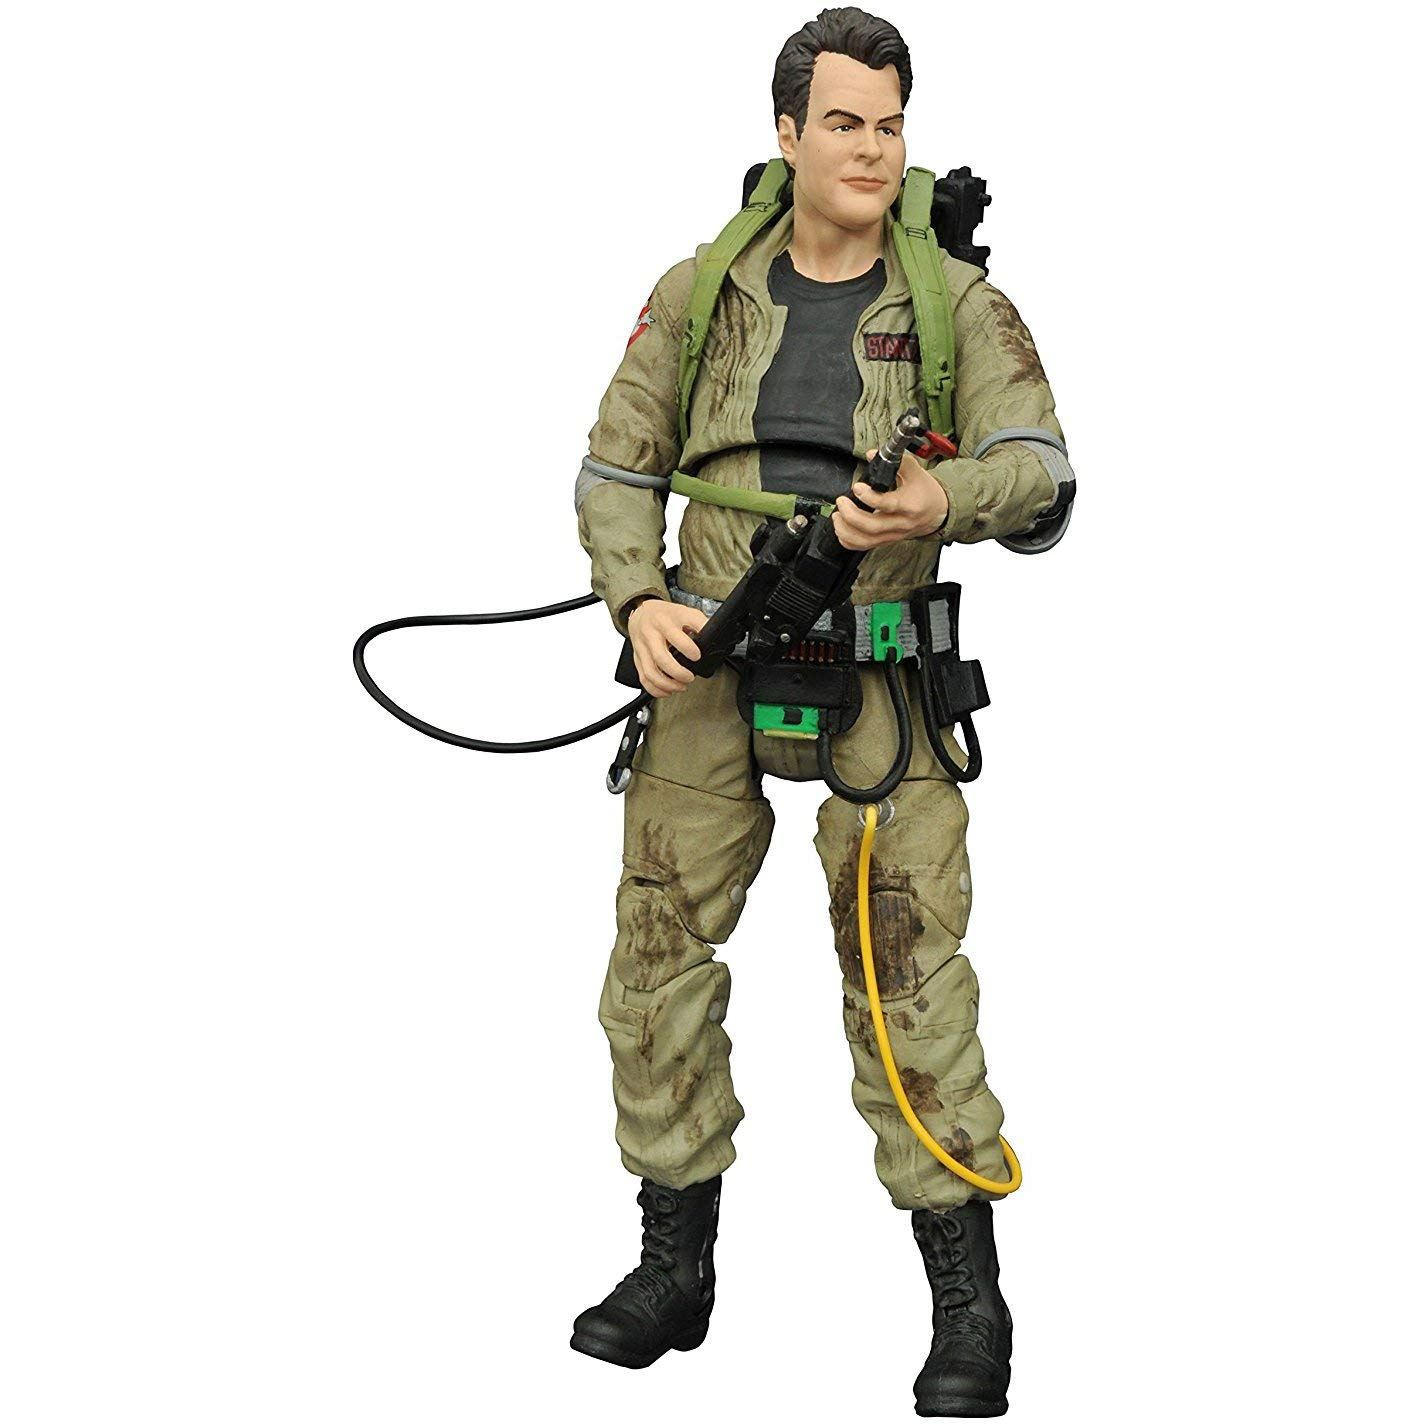 Ghostbusters-Select-Action-Figure-1984-Deluxe-Character-Accessories-Diorama-18cm